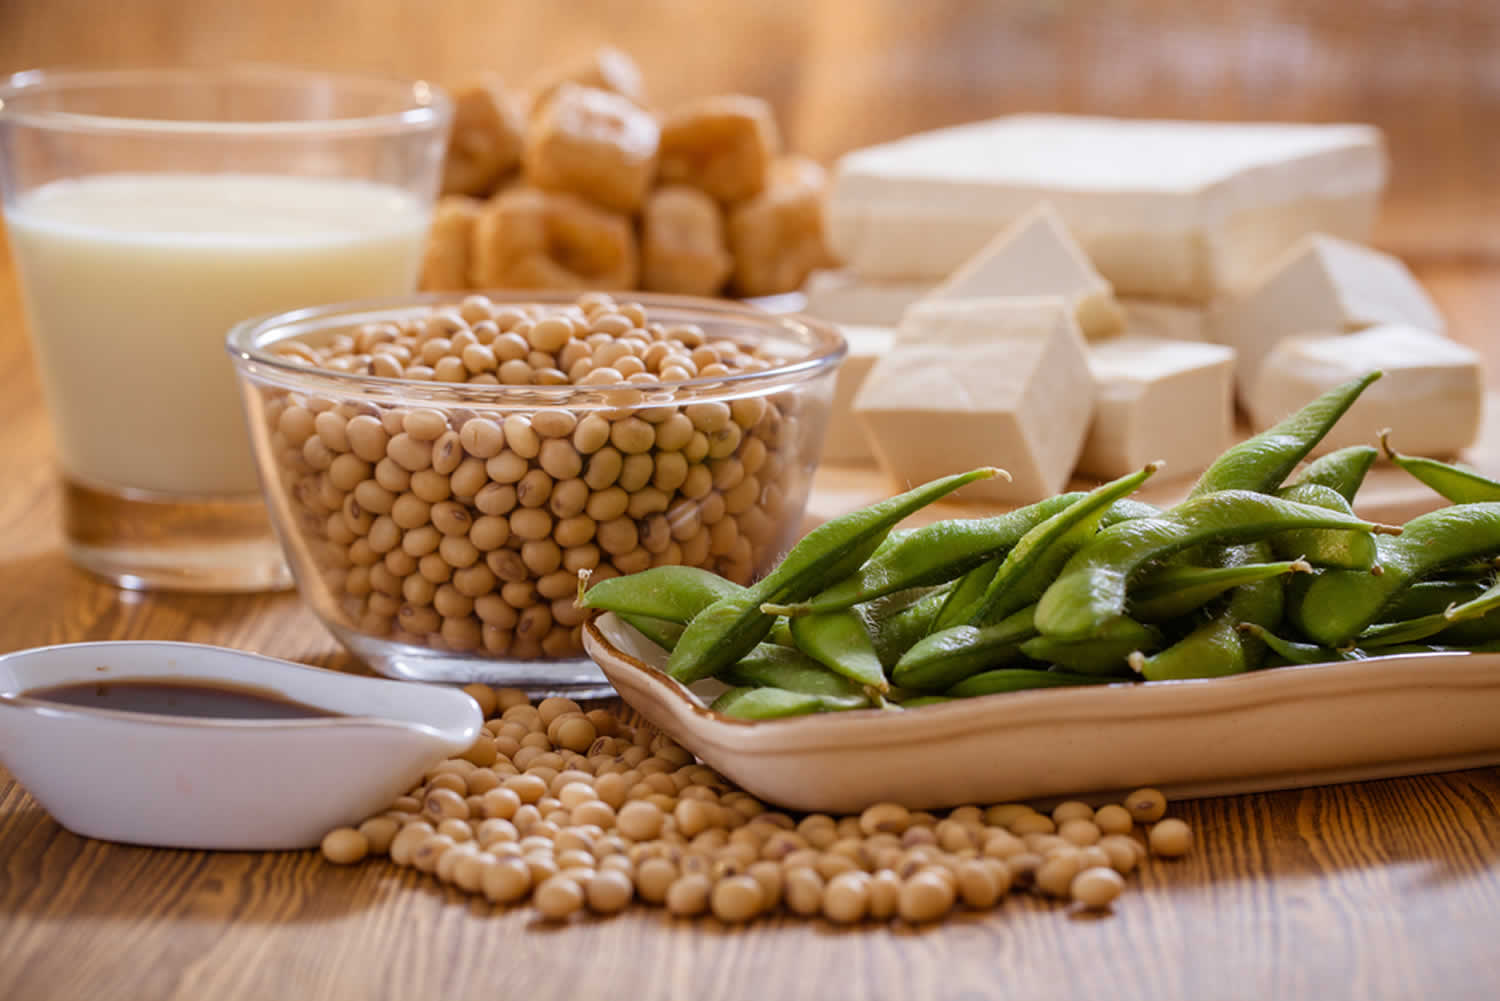 Phytoestrogens Foods Amp Supplements Benefits And Side Effects